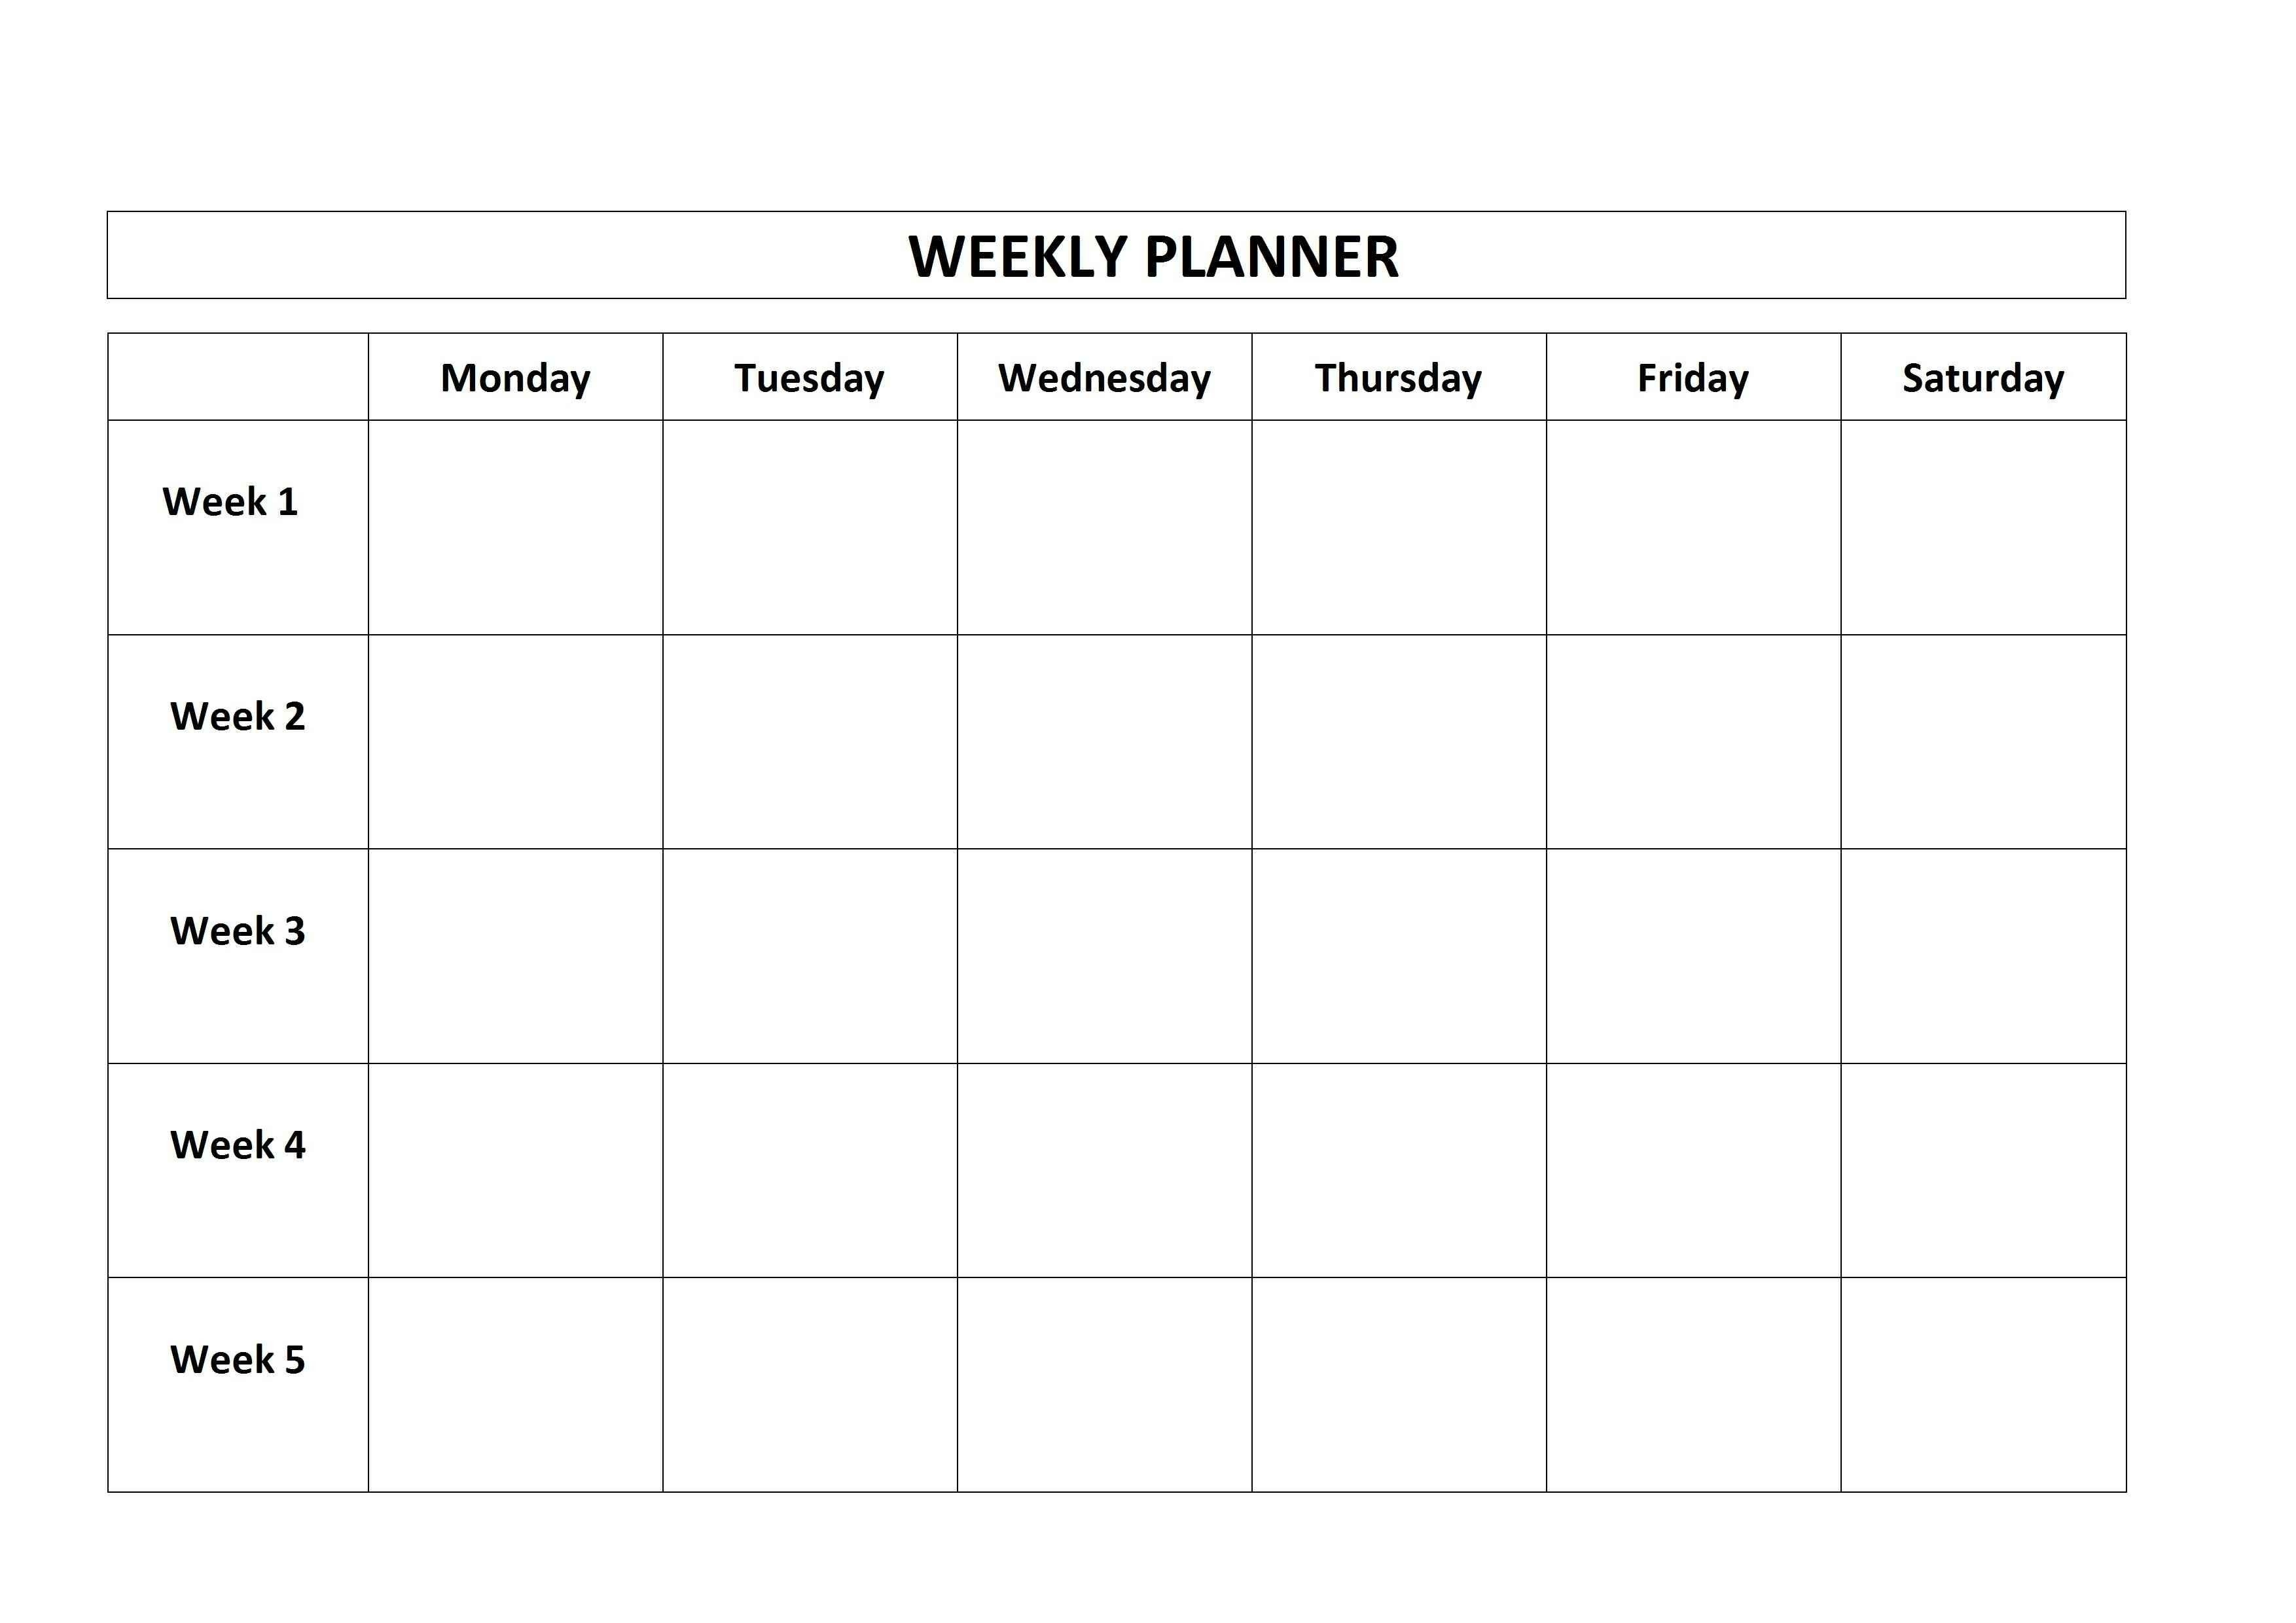 Blank Calendar 5 Day Week | Example Calendar Printable pertaining to 5 Day Weekly Calendar Template